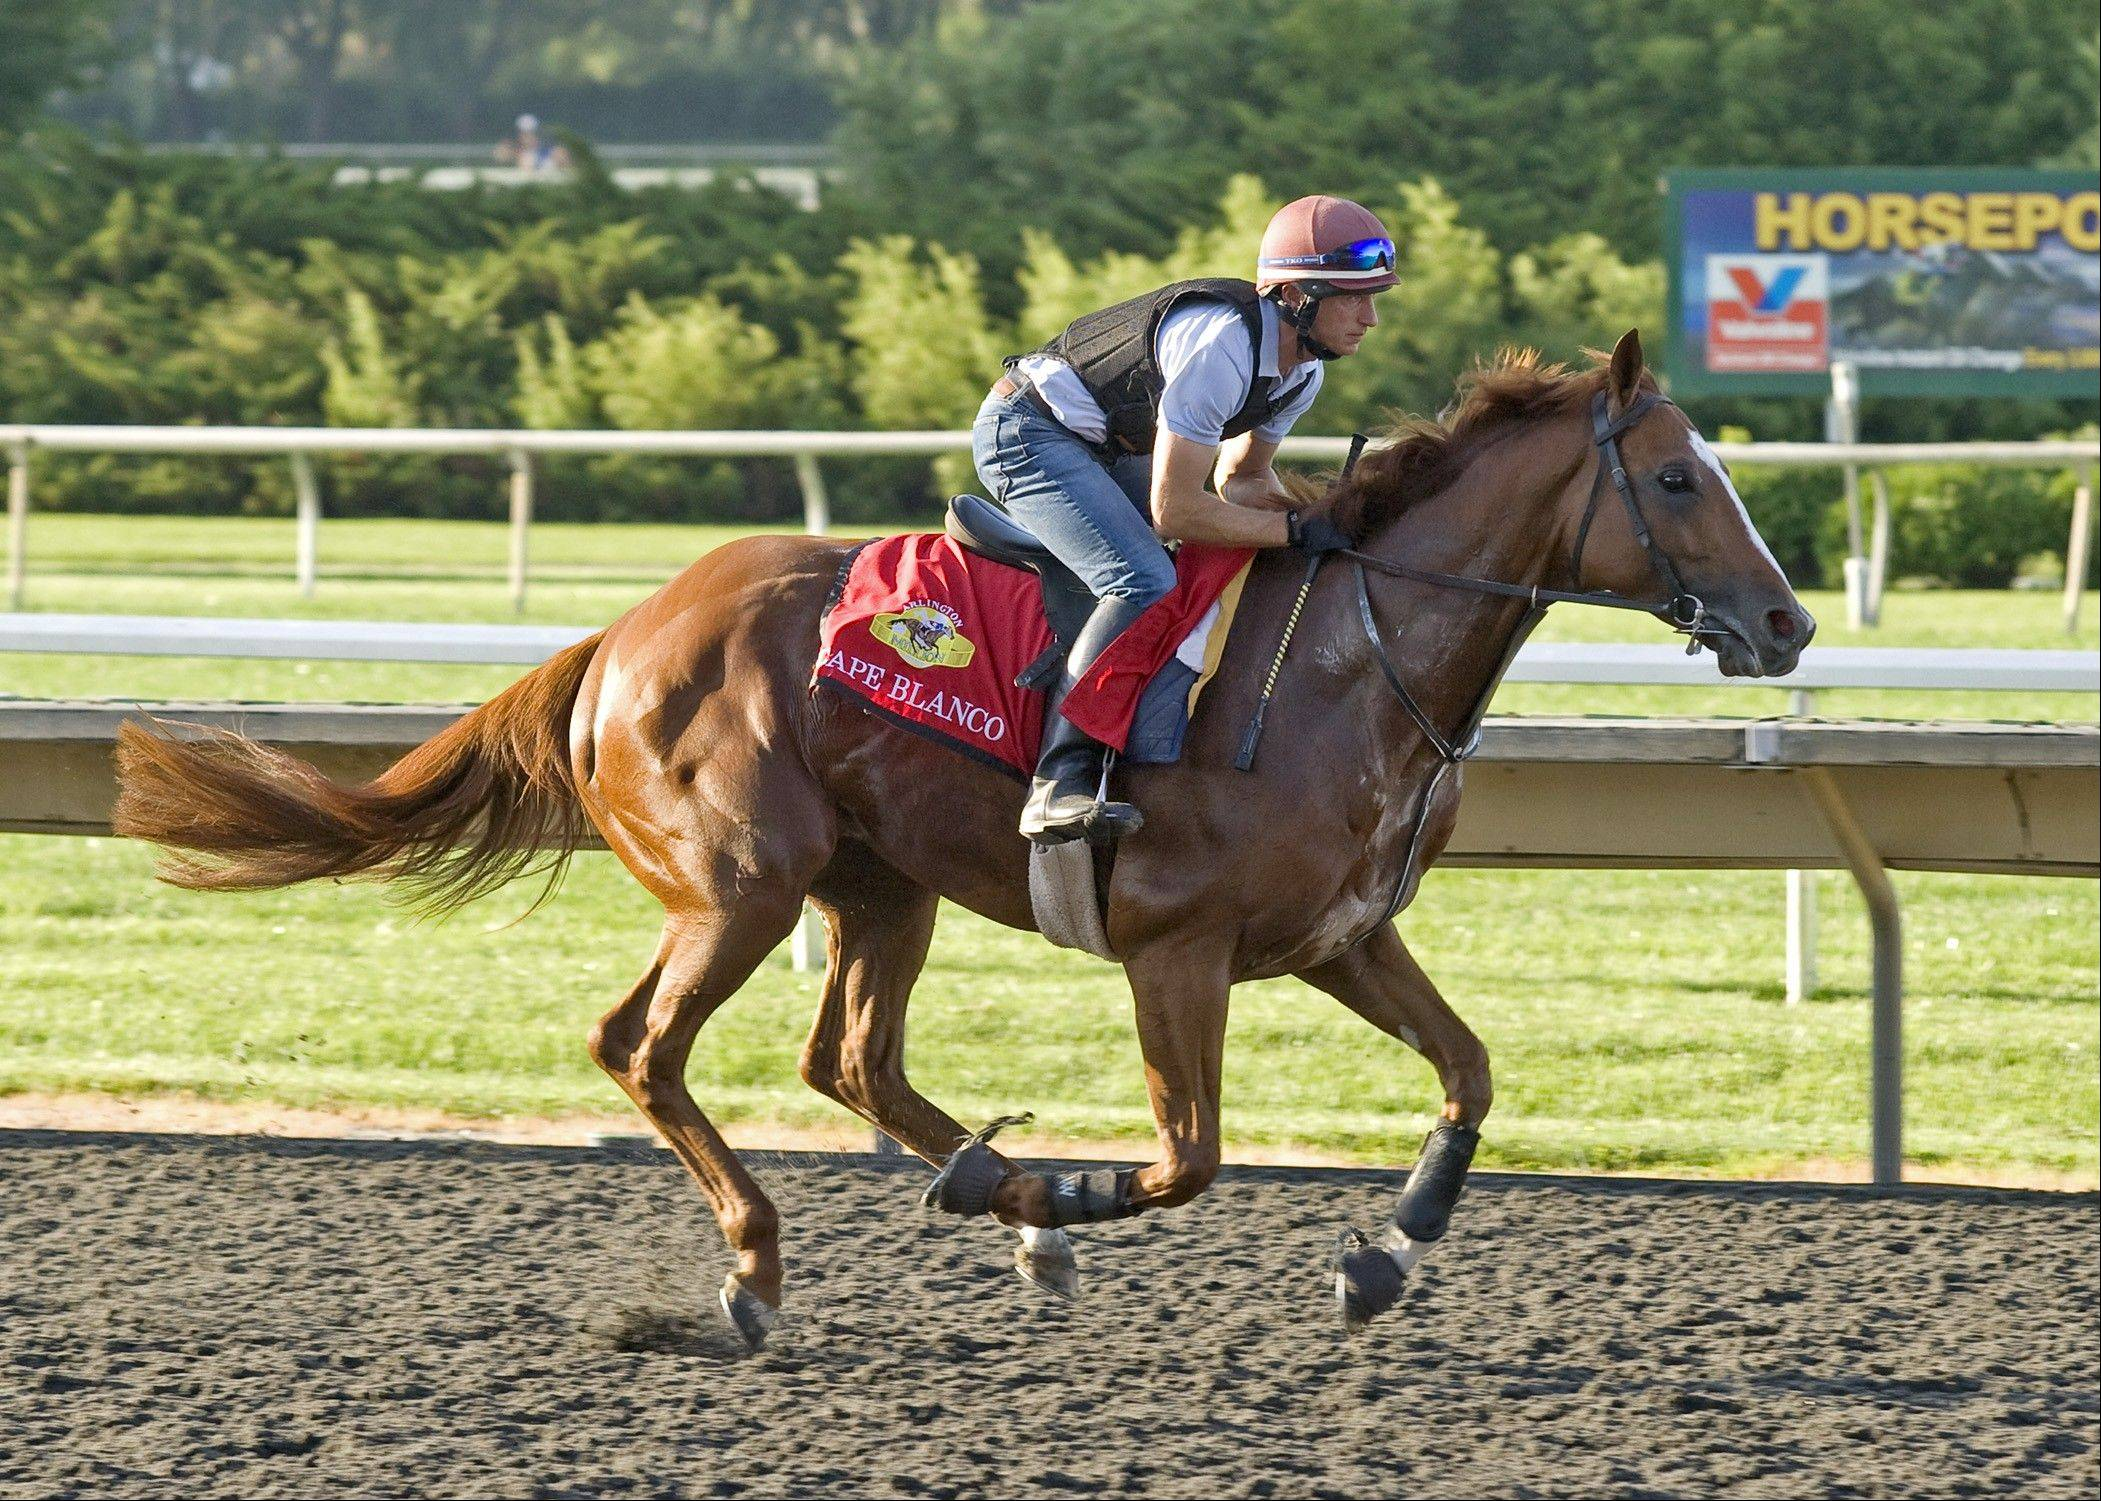 Strong international field among Arlington favorites